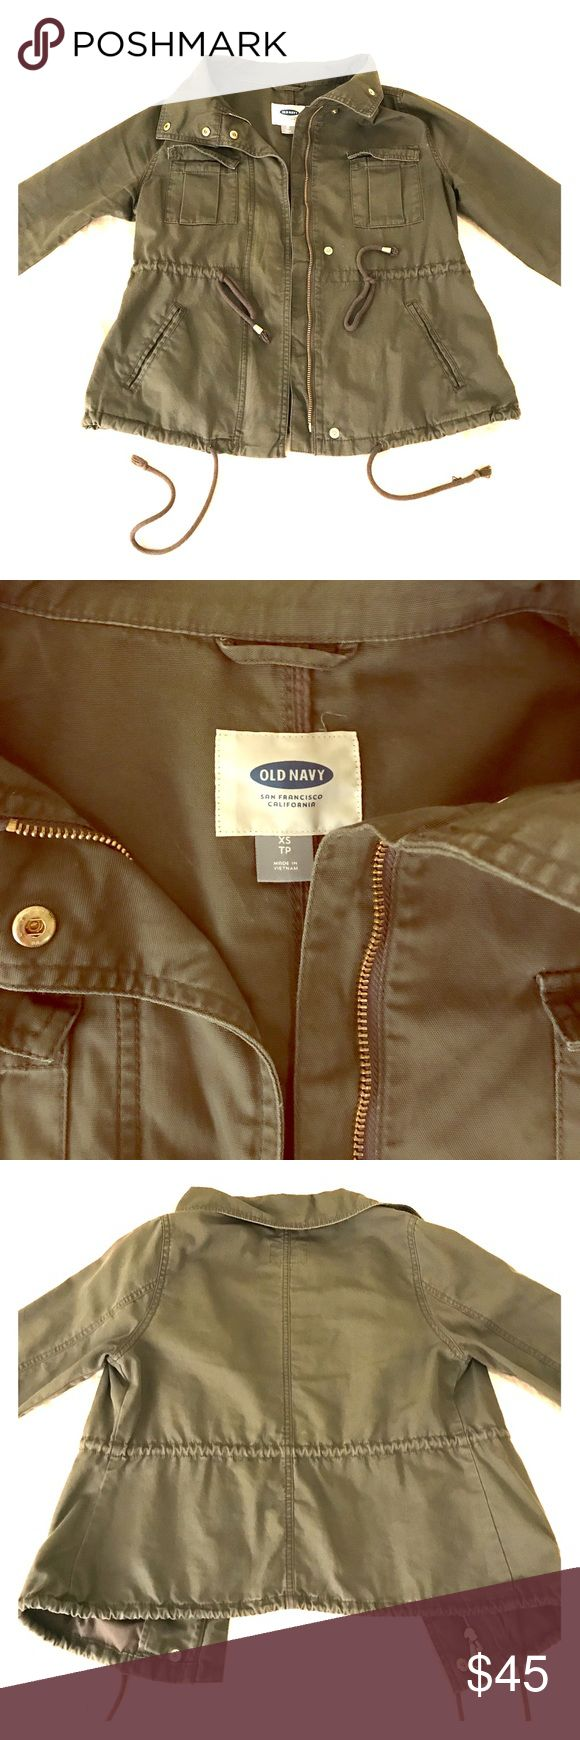 Olive Green Military Jacket - Size XS With gold accents from Old Navy. Great condition! Perfect addition to your spring outfit. Old Navy Jackets & Coats Utility Jackets